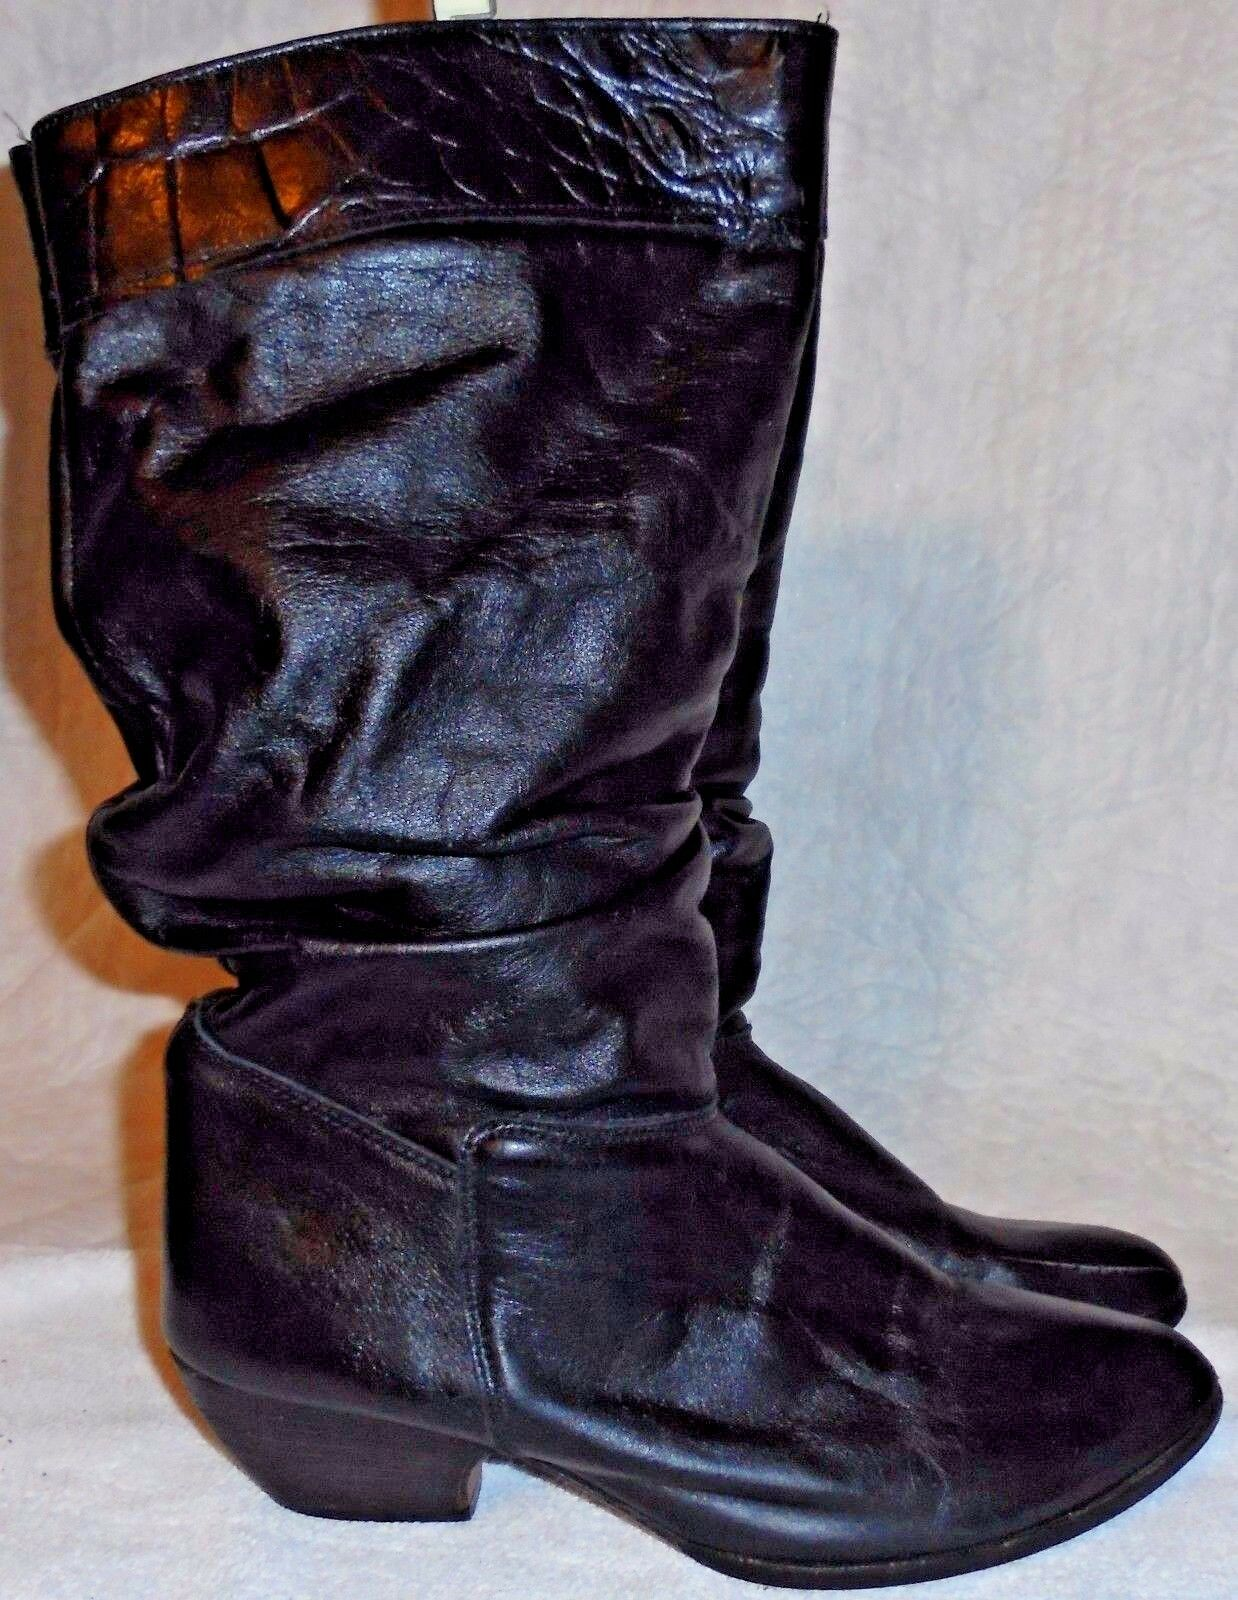 ACME, LADIES BLACK LEATHER SLOUCH MID CALF PULL ON BOOT, SIZE  6 1/2 M